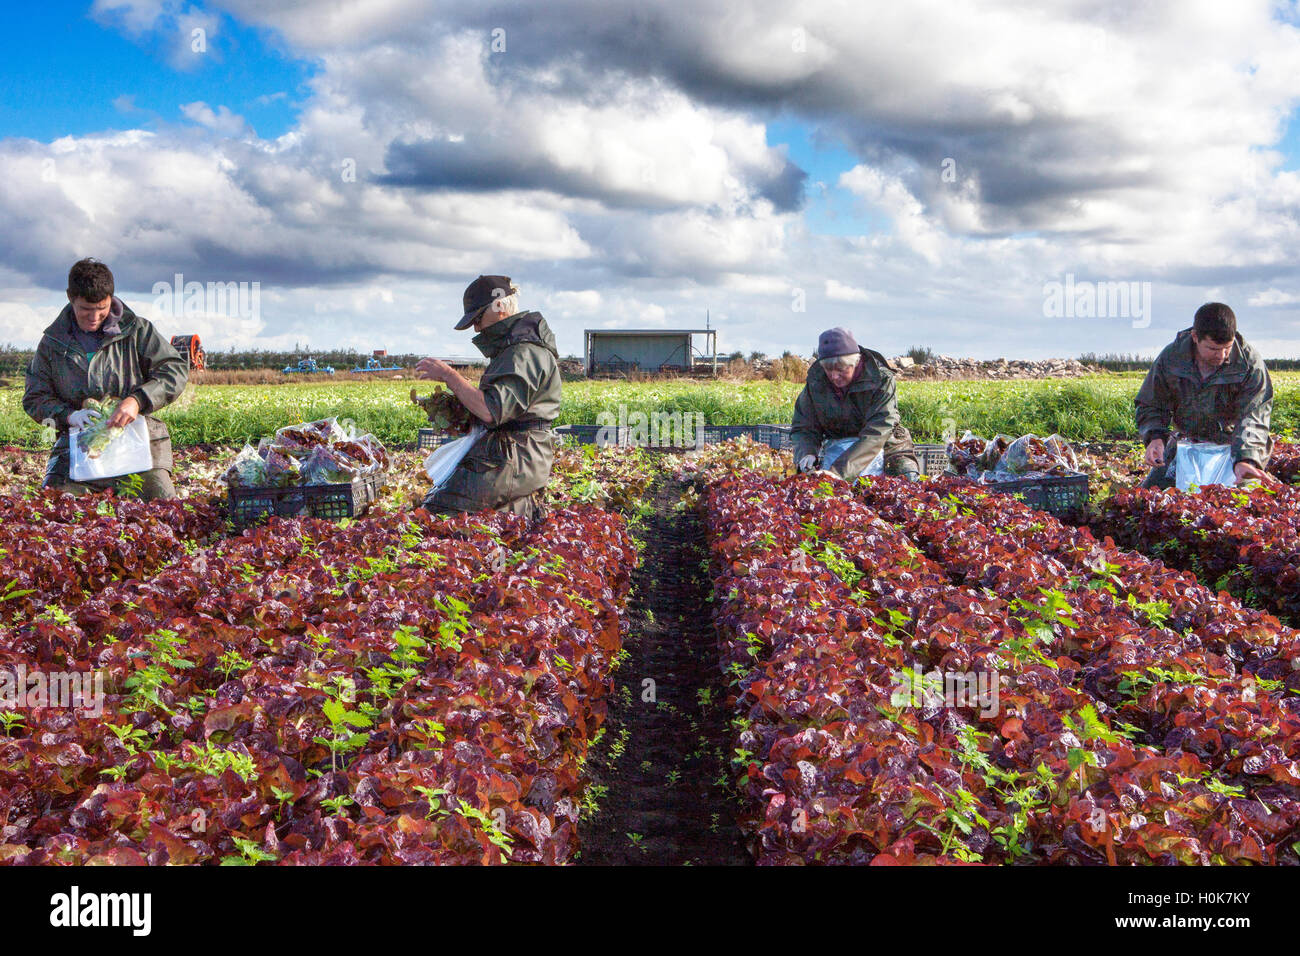 EU Farmer Workers, Tarleton, Lancashire: 22nd Sep 2016.  EU nationals who are seasonal migrant farm labourers, picking Stock Photo